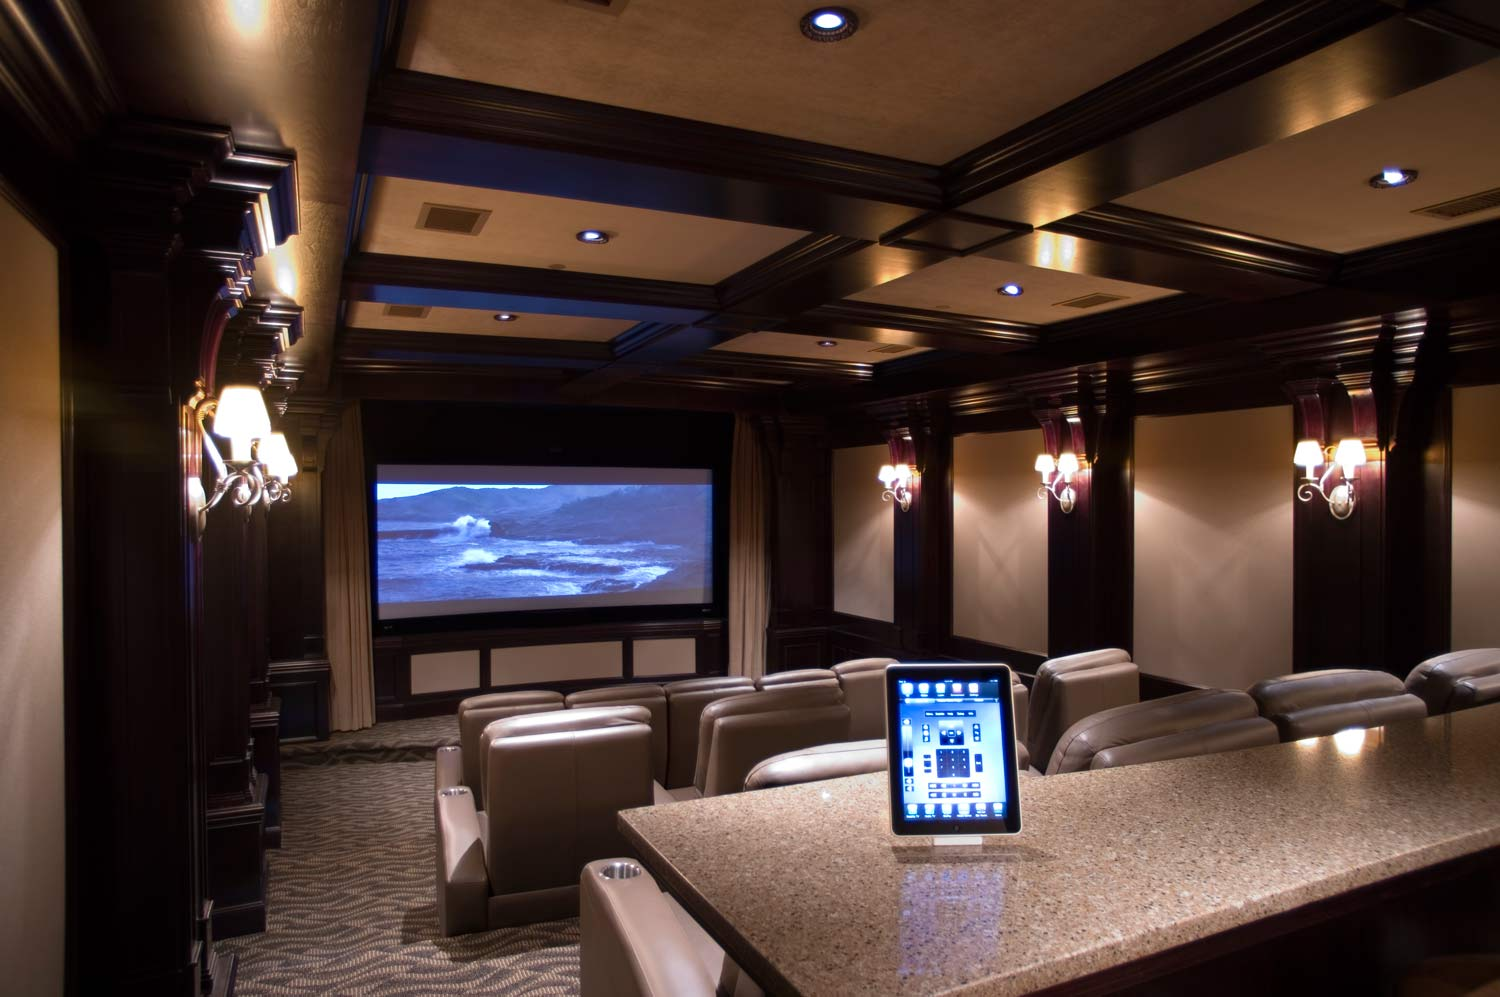 Incroyable Home Theatre Systems :